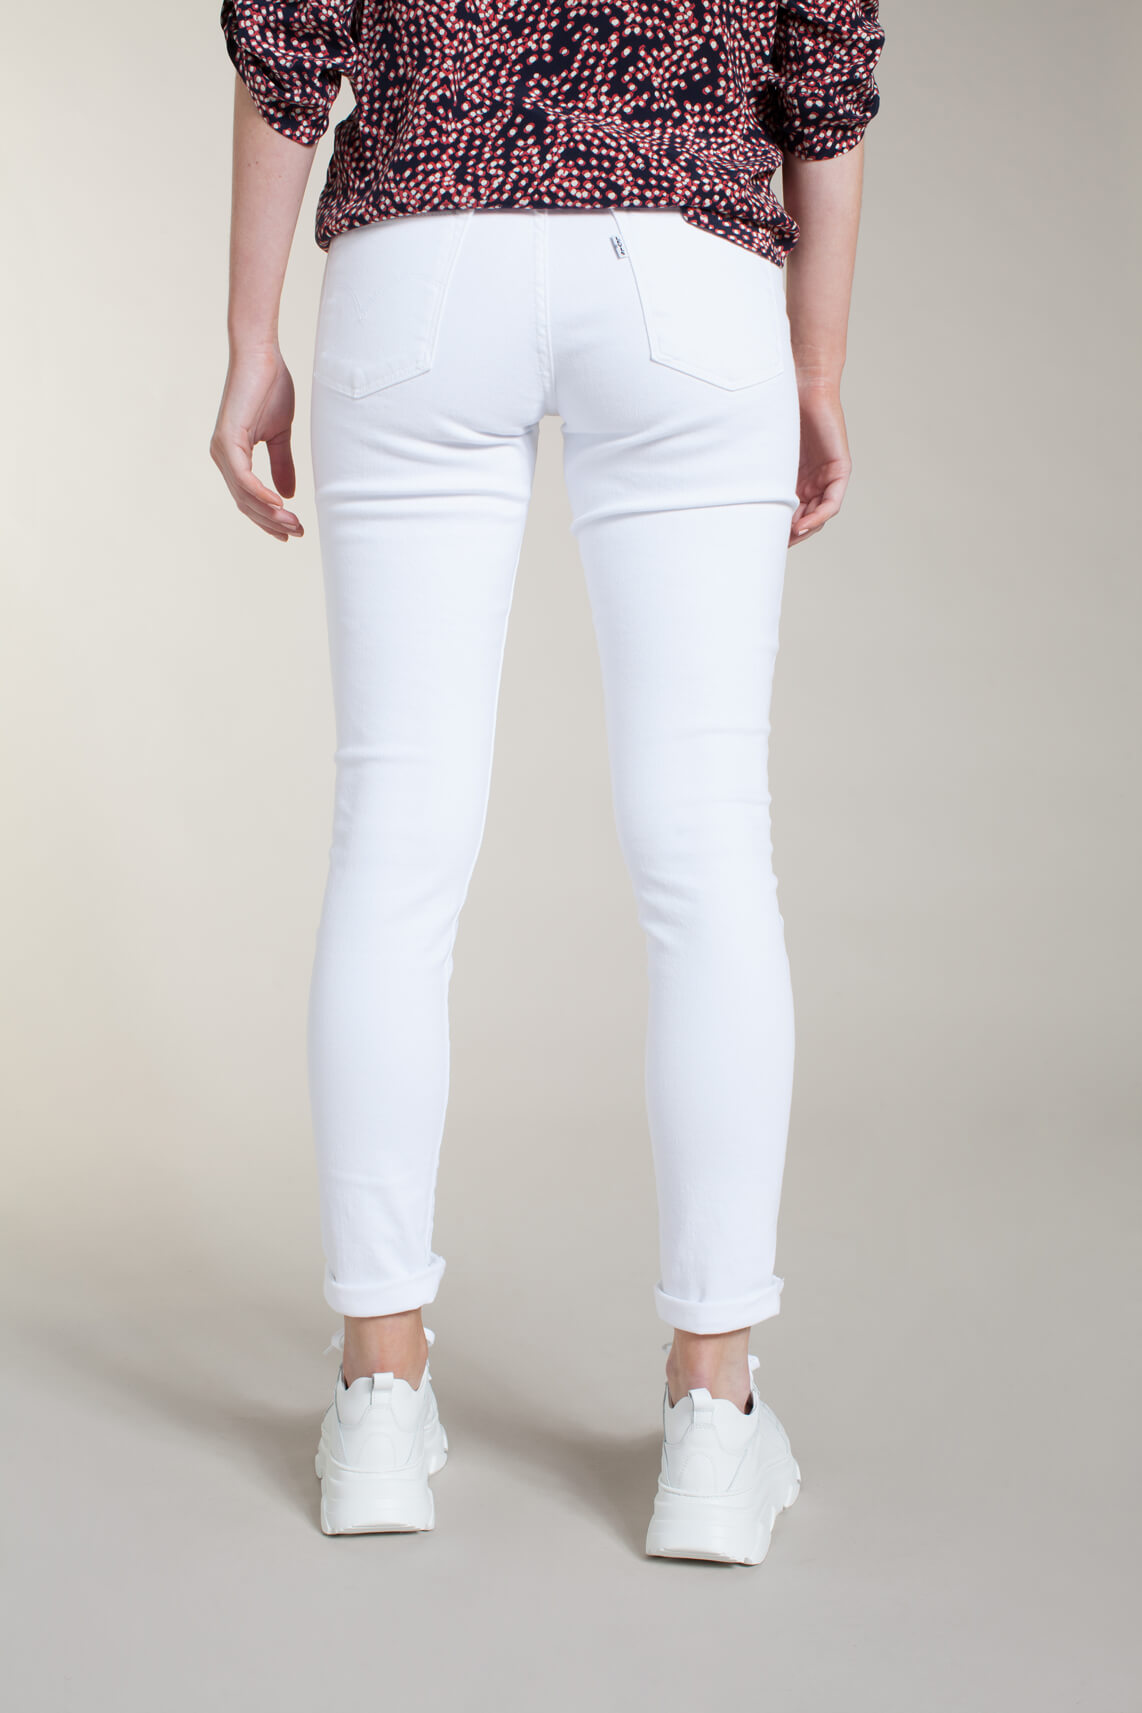 Levi s Dames 311 L30 shaping skinny jeans wit